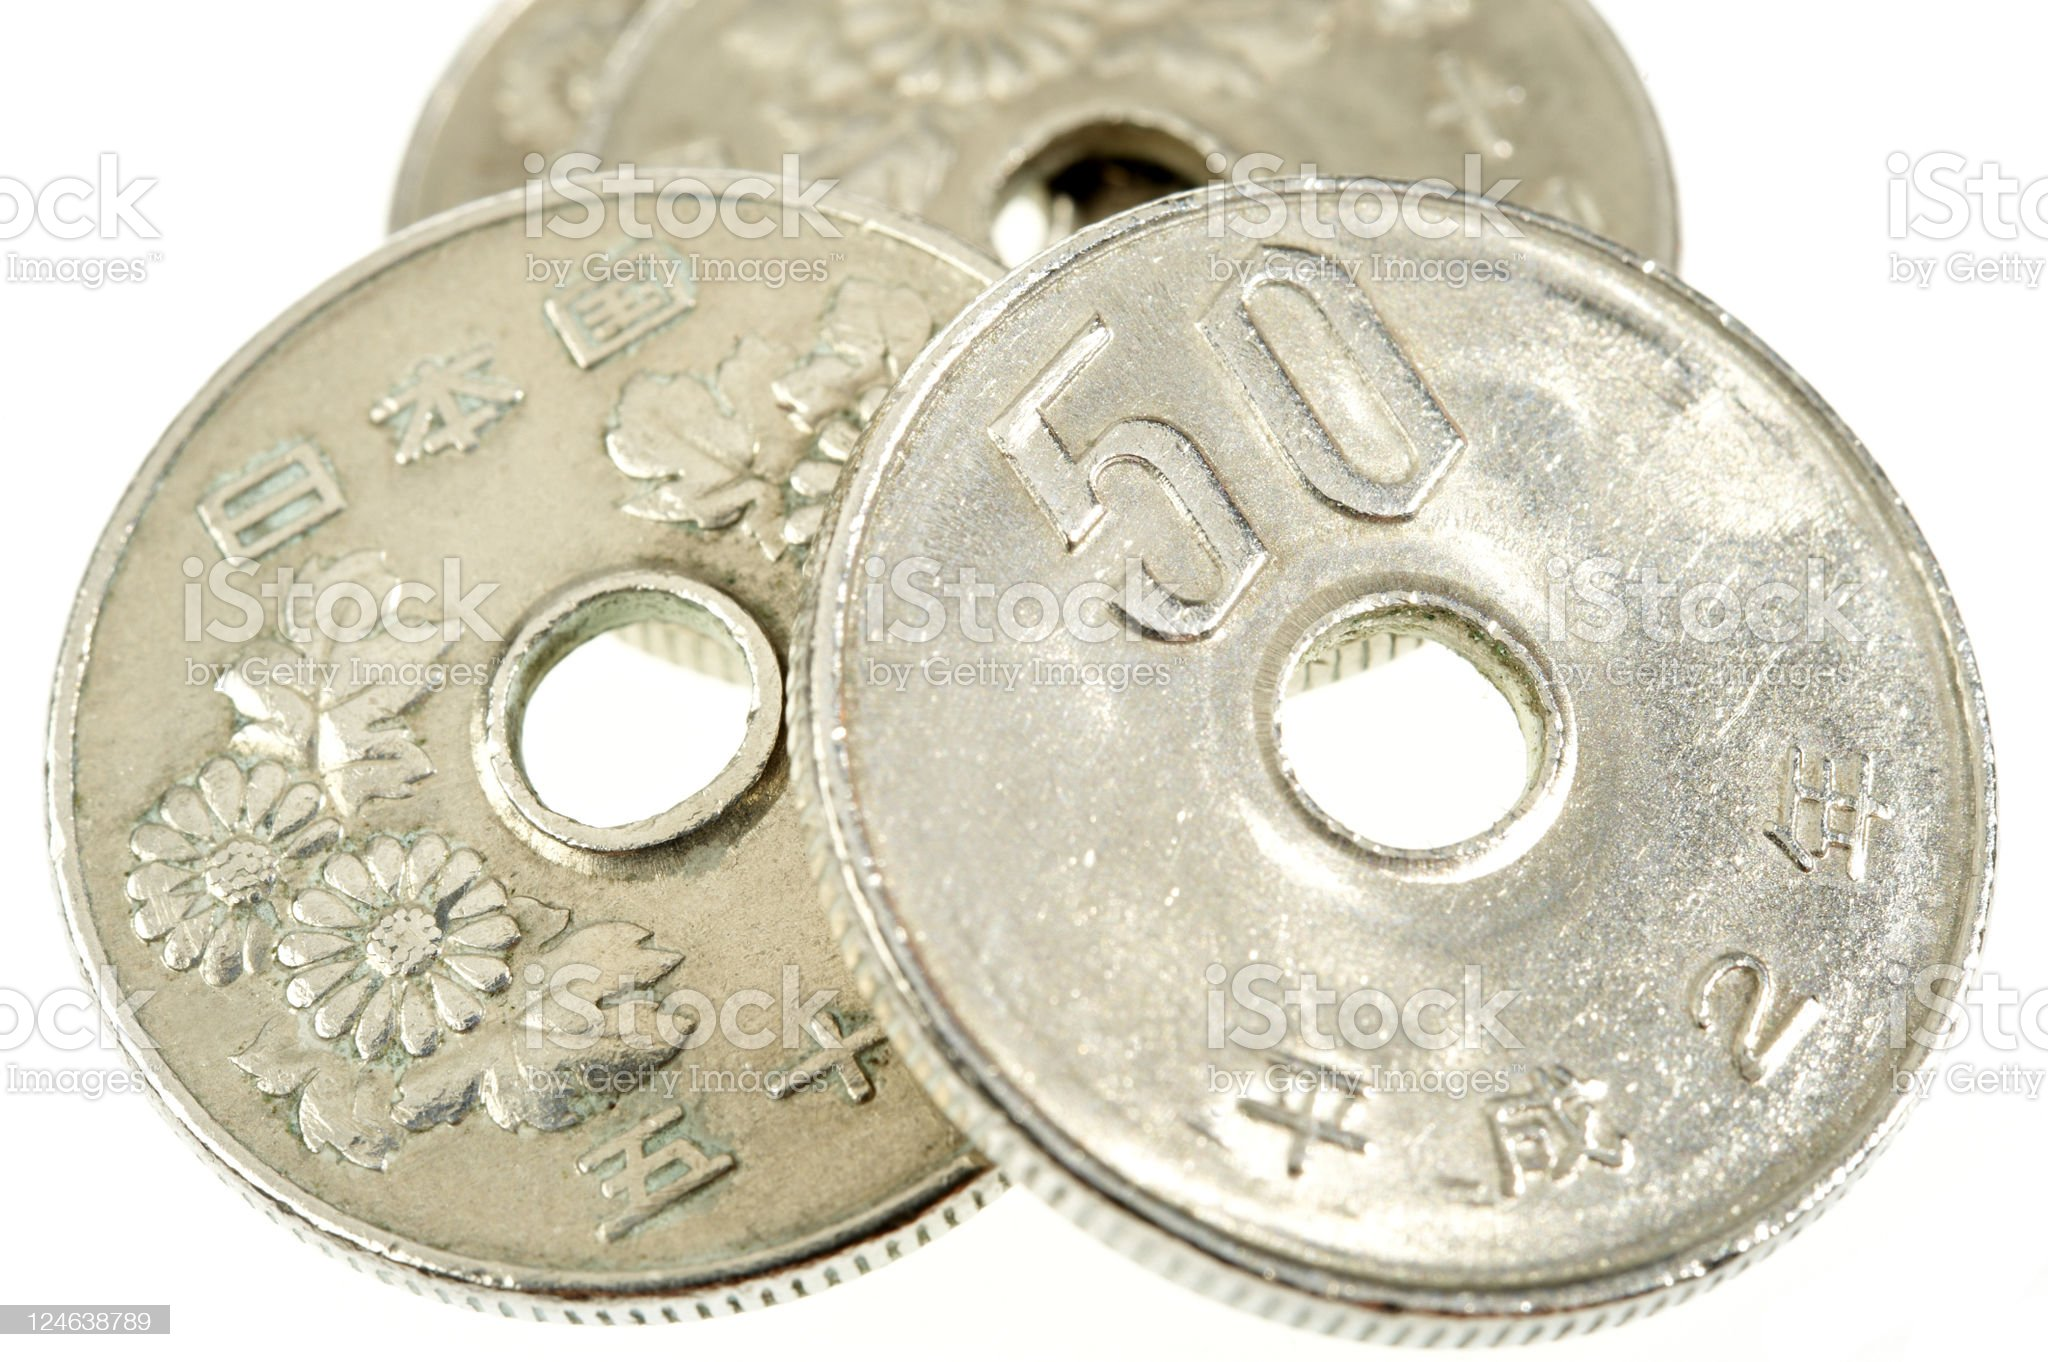 Japanese Coins royalty-free stock photo